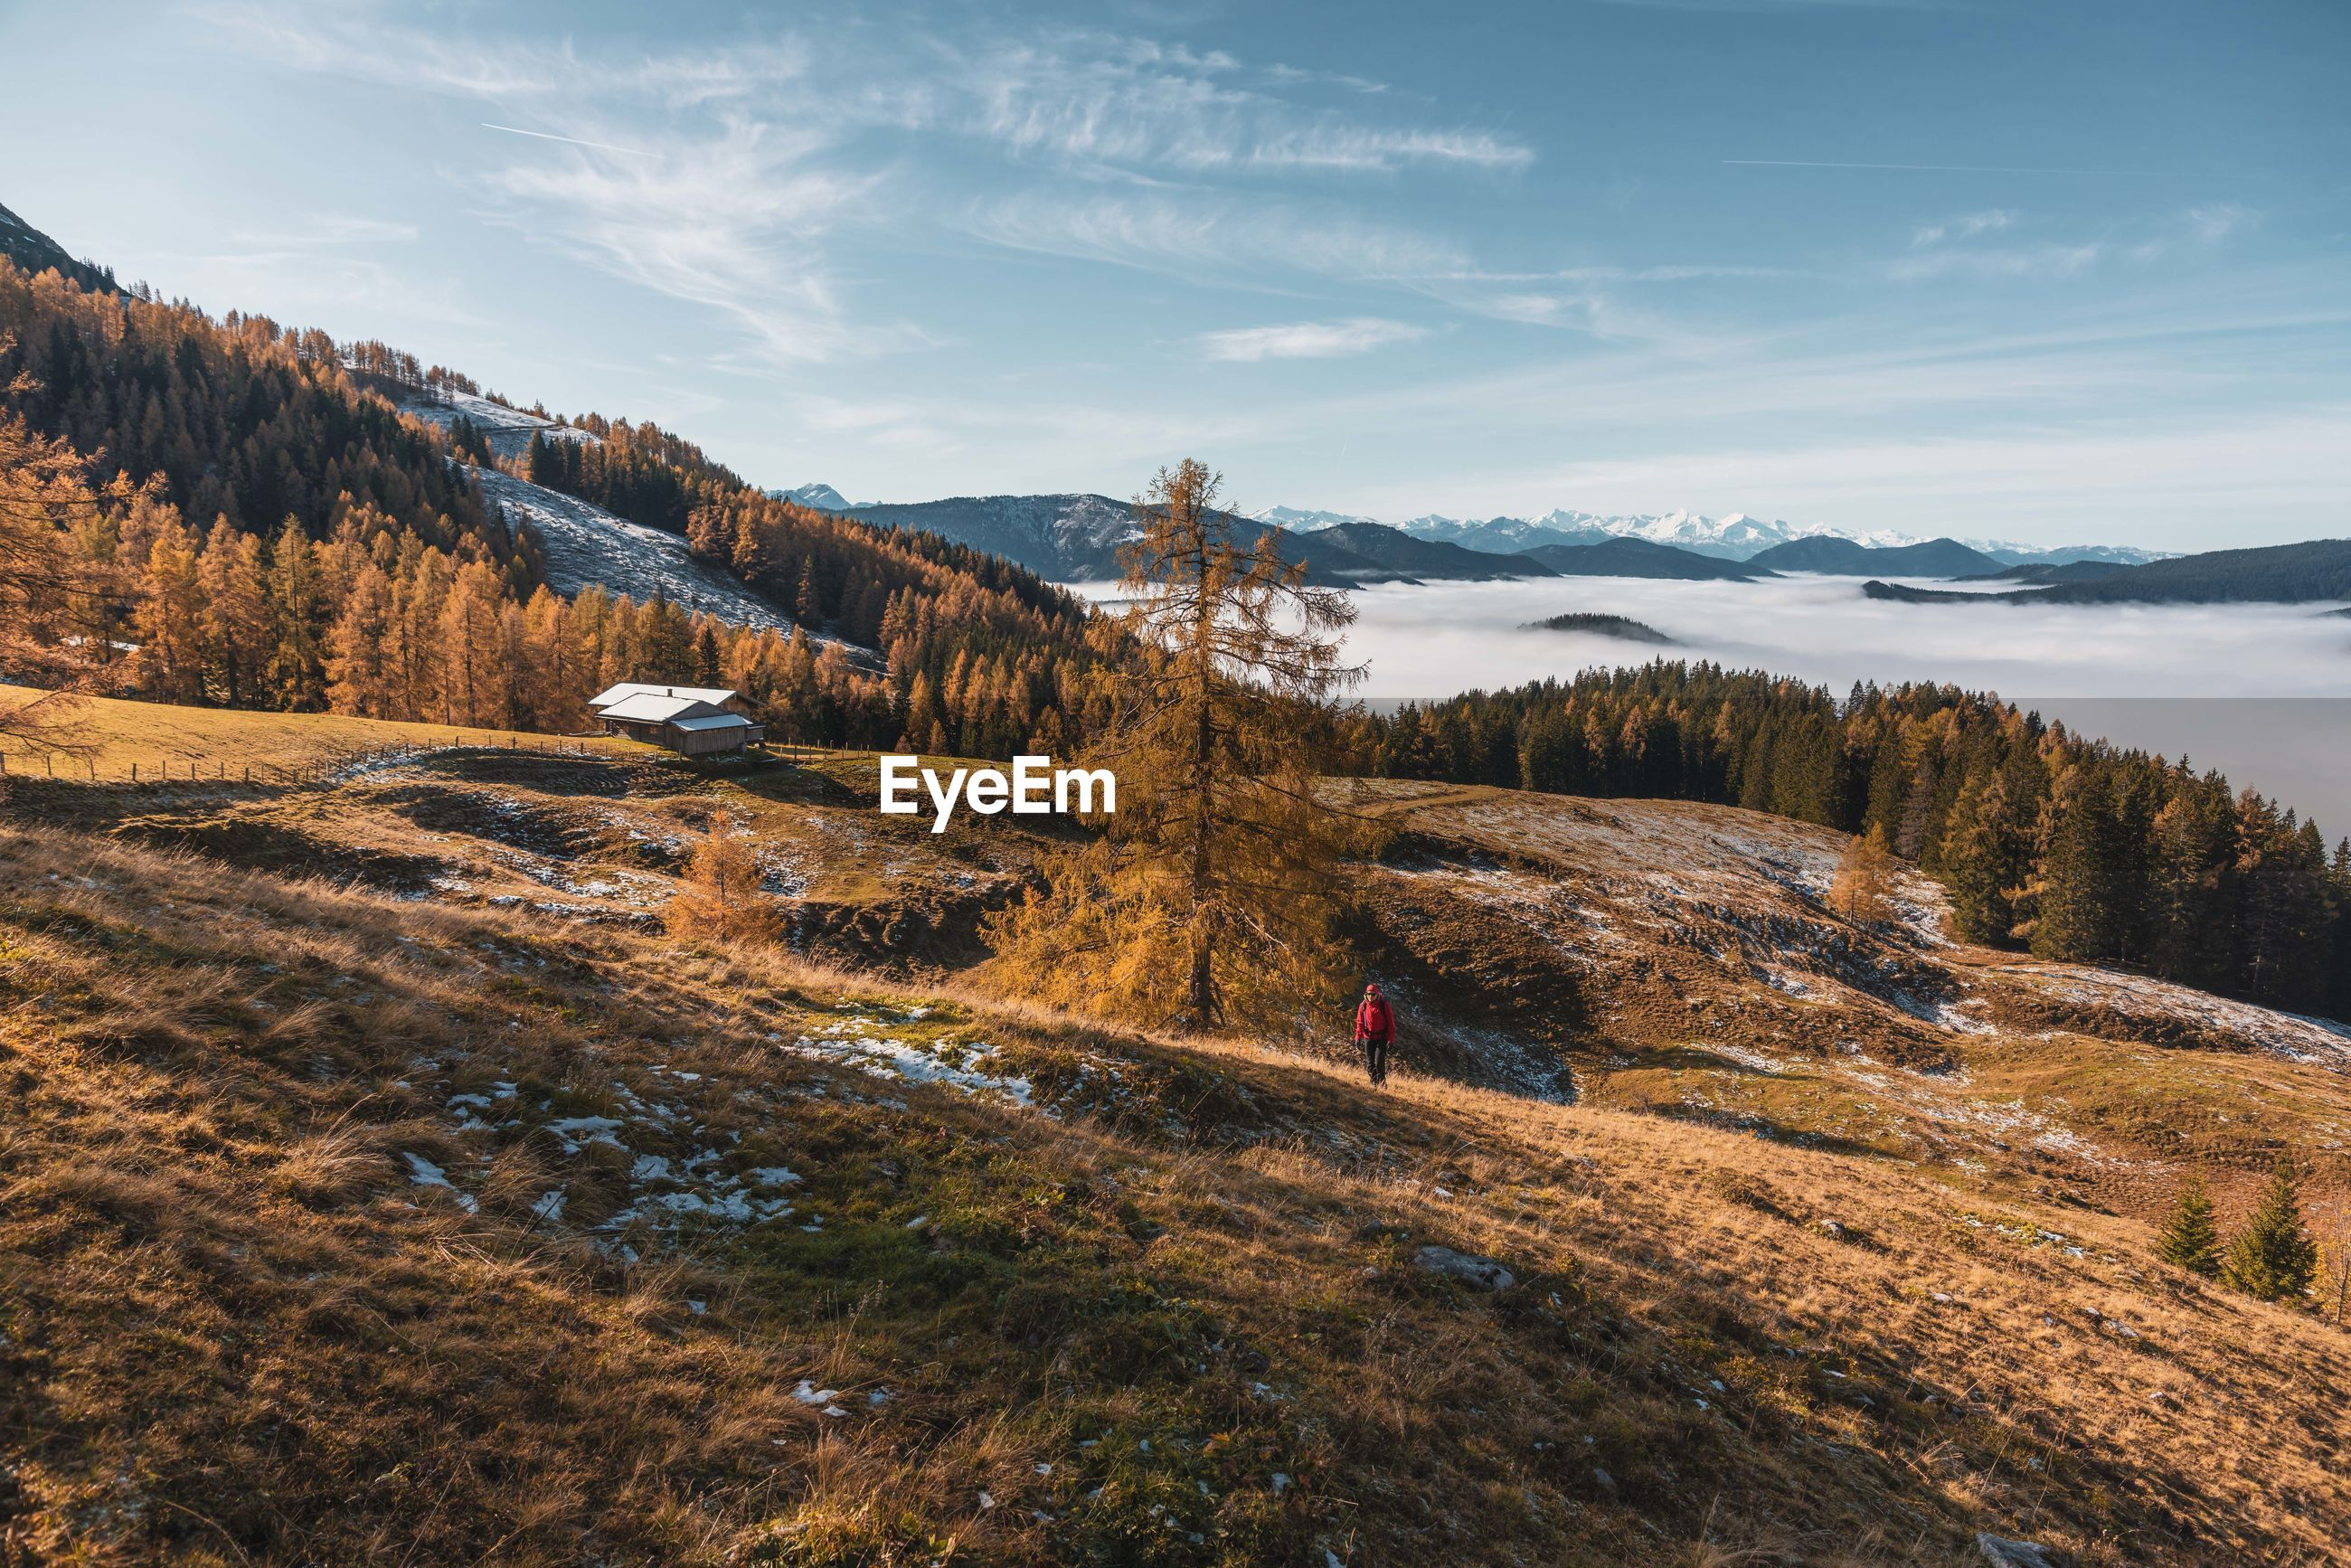 High angle view of woman hiking on mountain against sky during winter